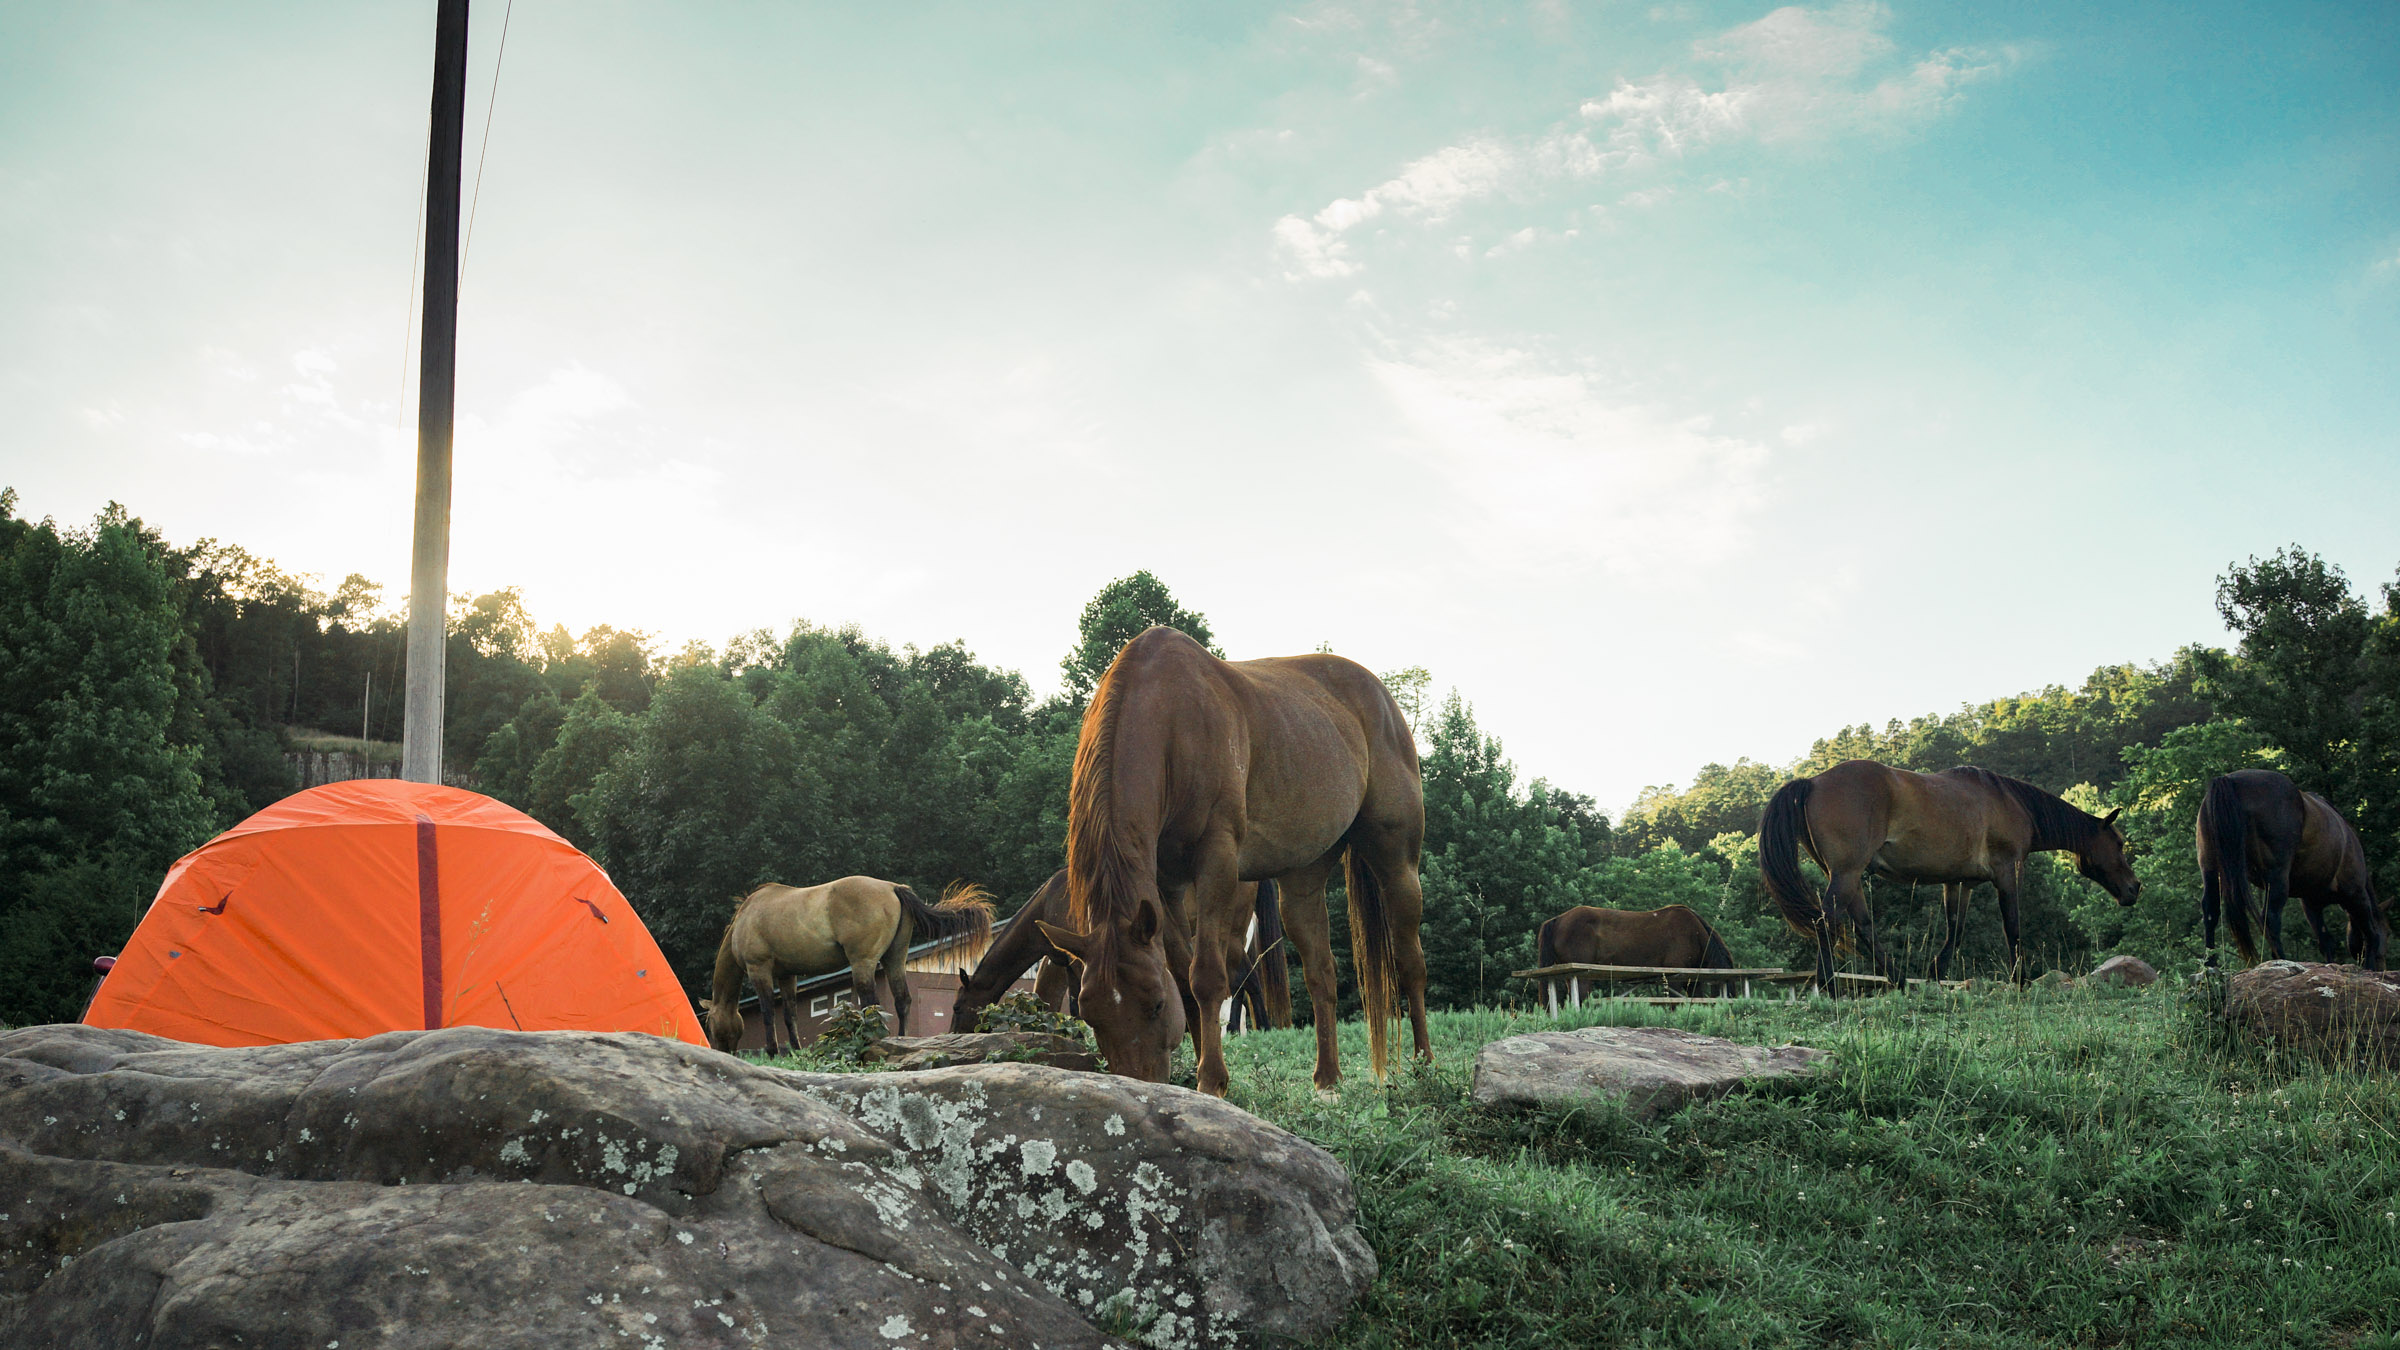 Horses, goats, skunks, squirrels can be walking around your tent and that is normal.